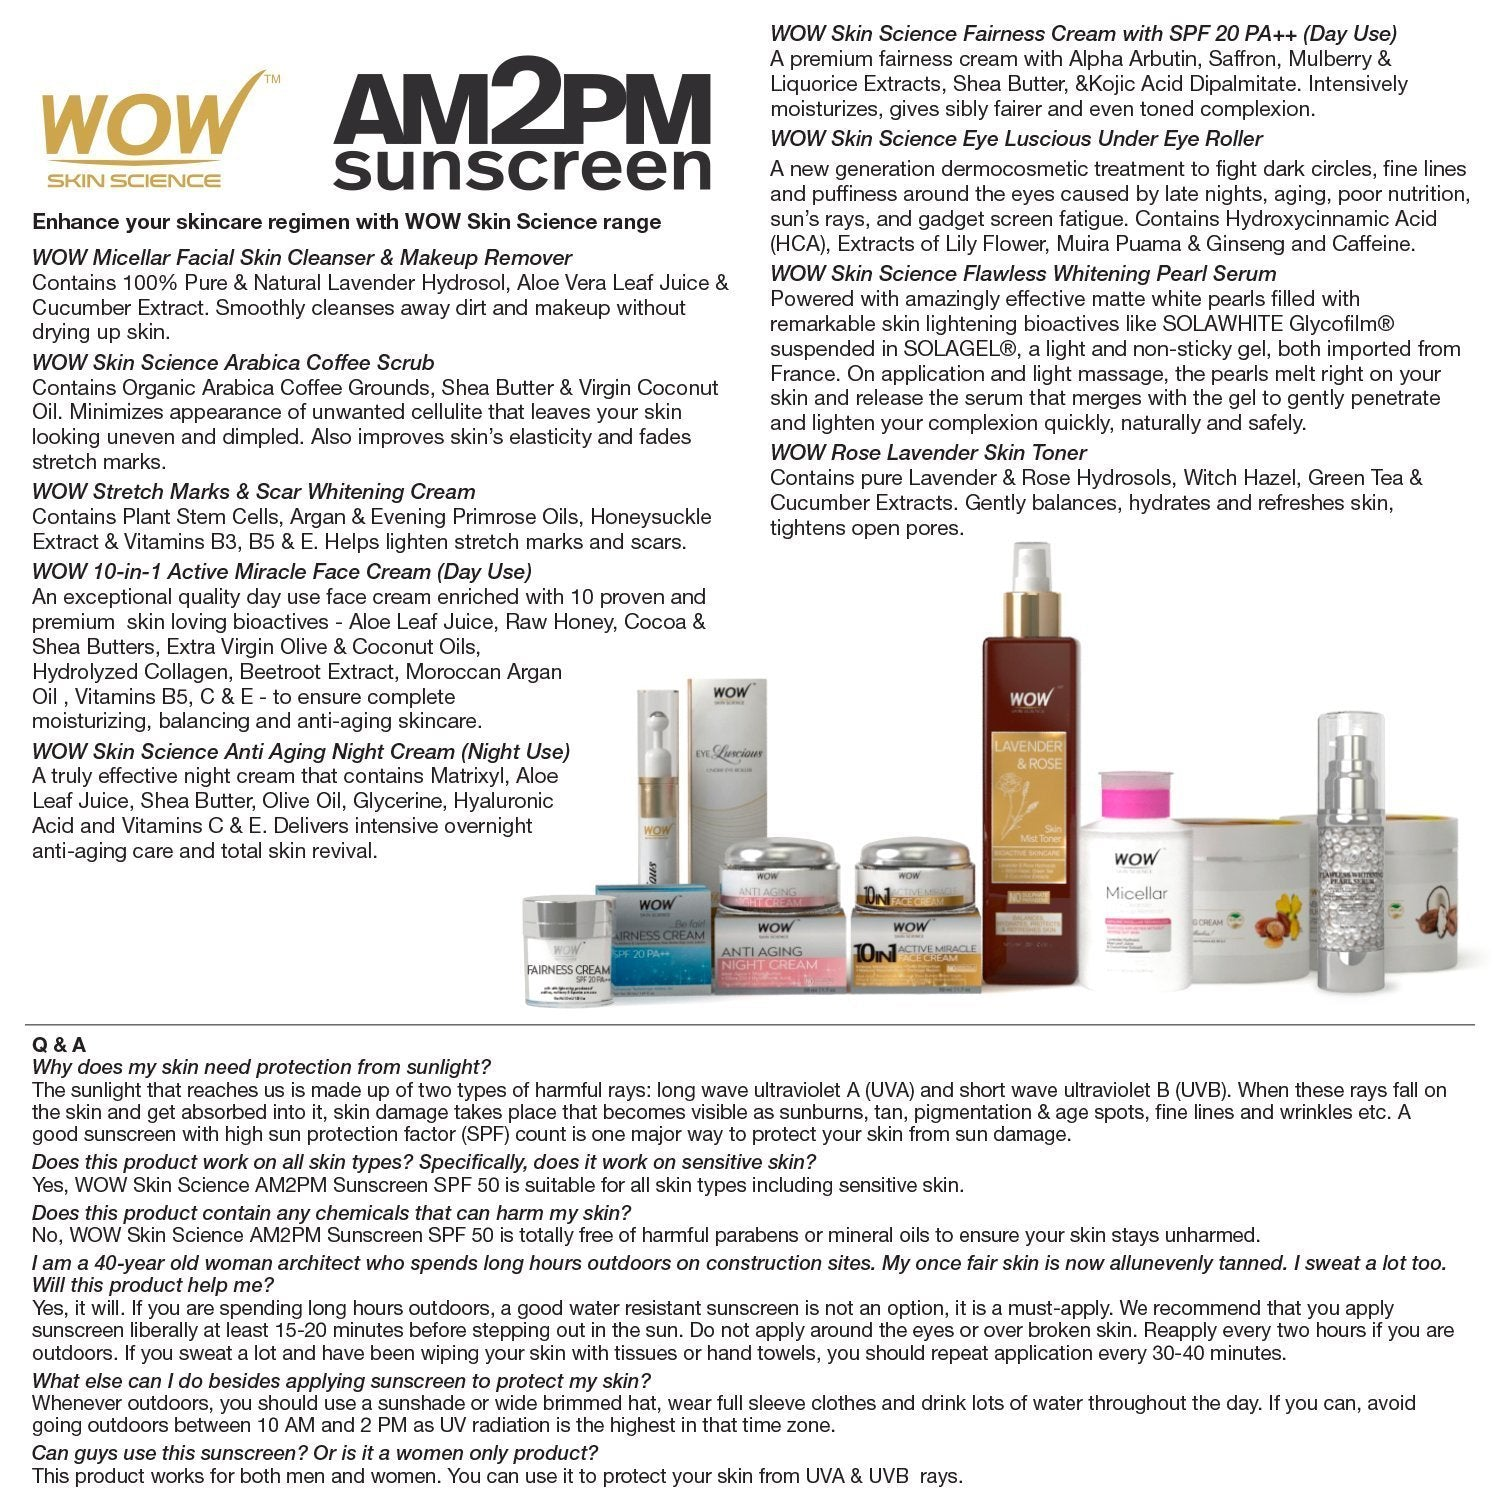 WOW Skin Science AM2PM Sunscreen SPF-50 - 100 ml